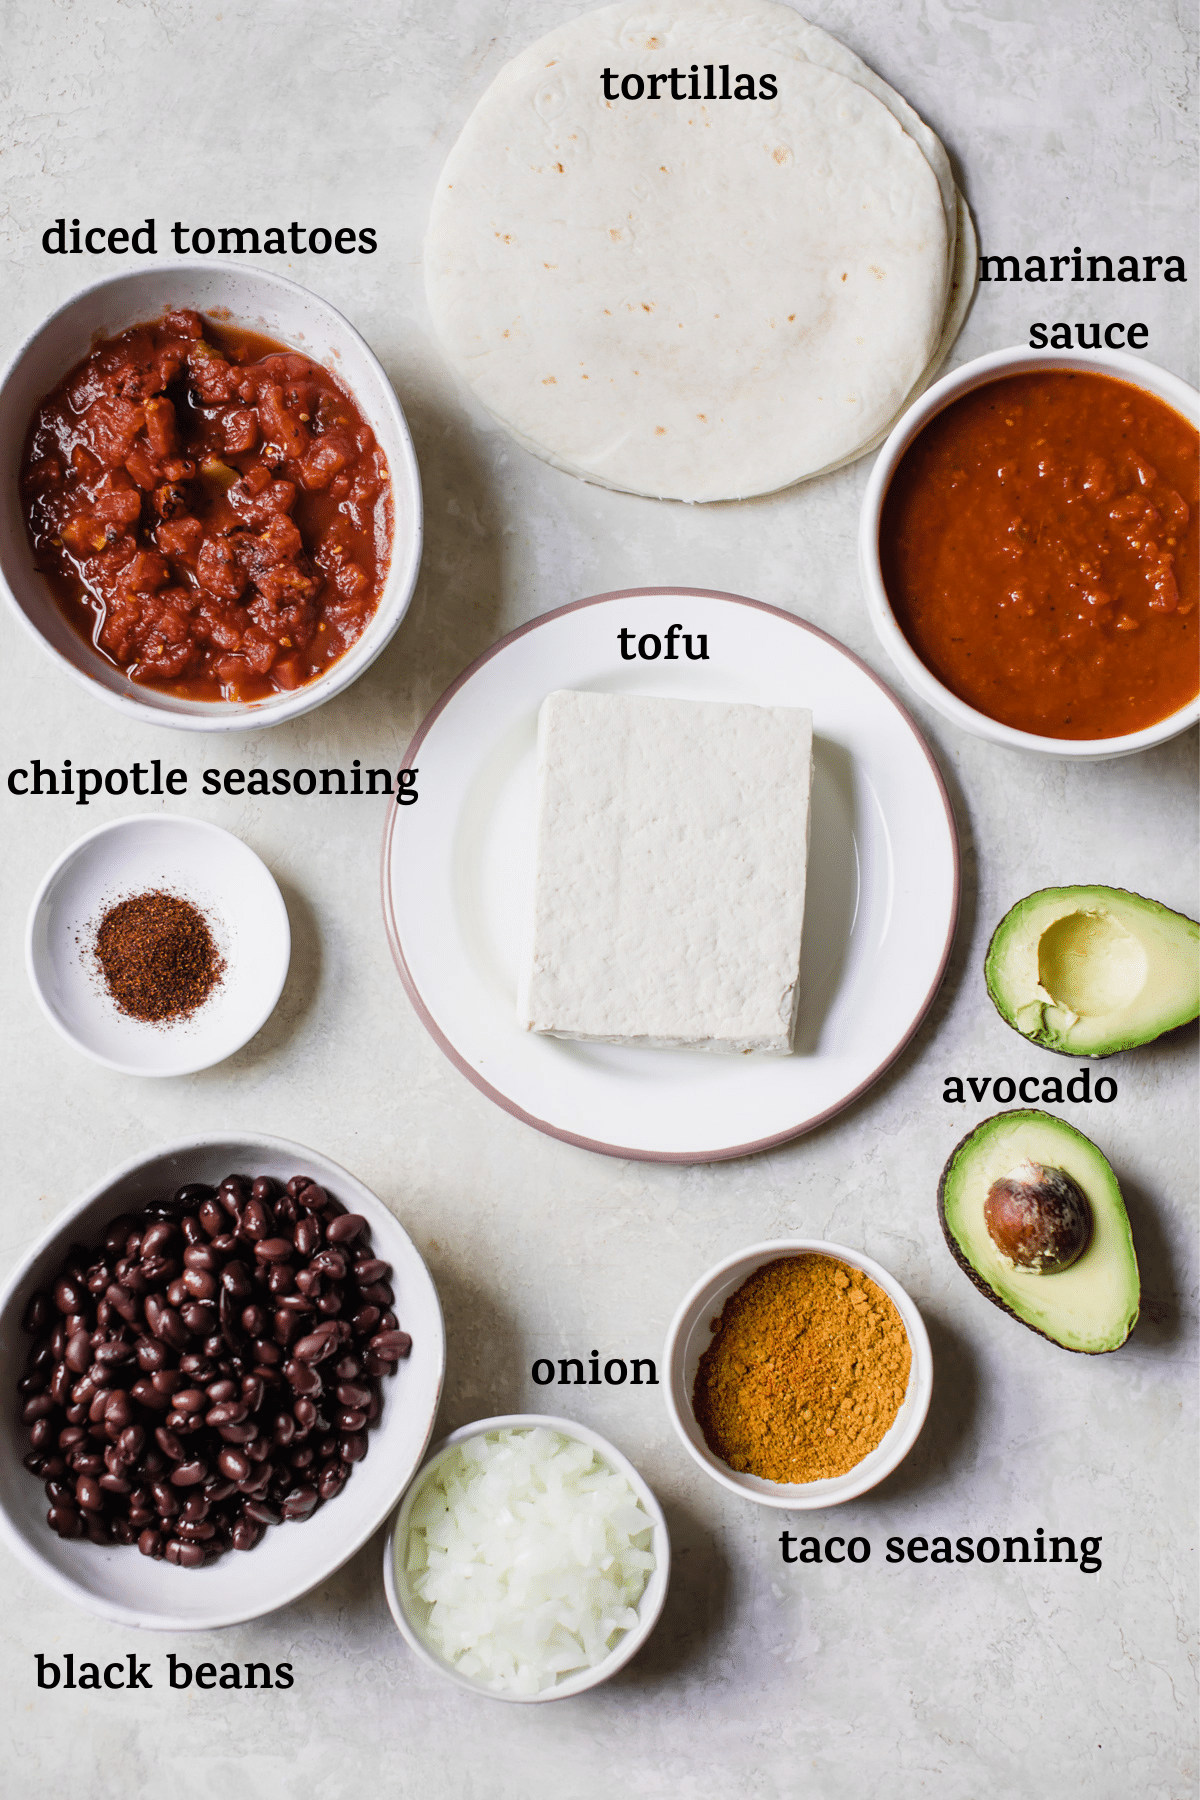 enchilada ingredients with text overlay